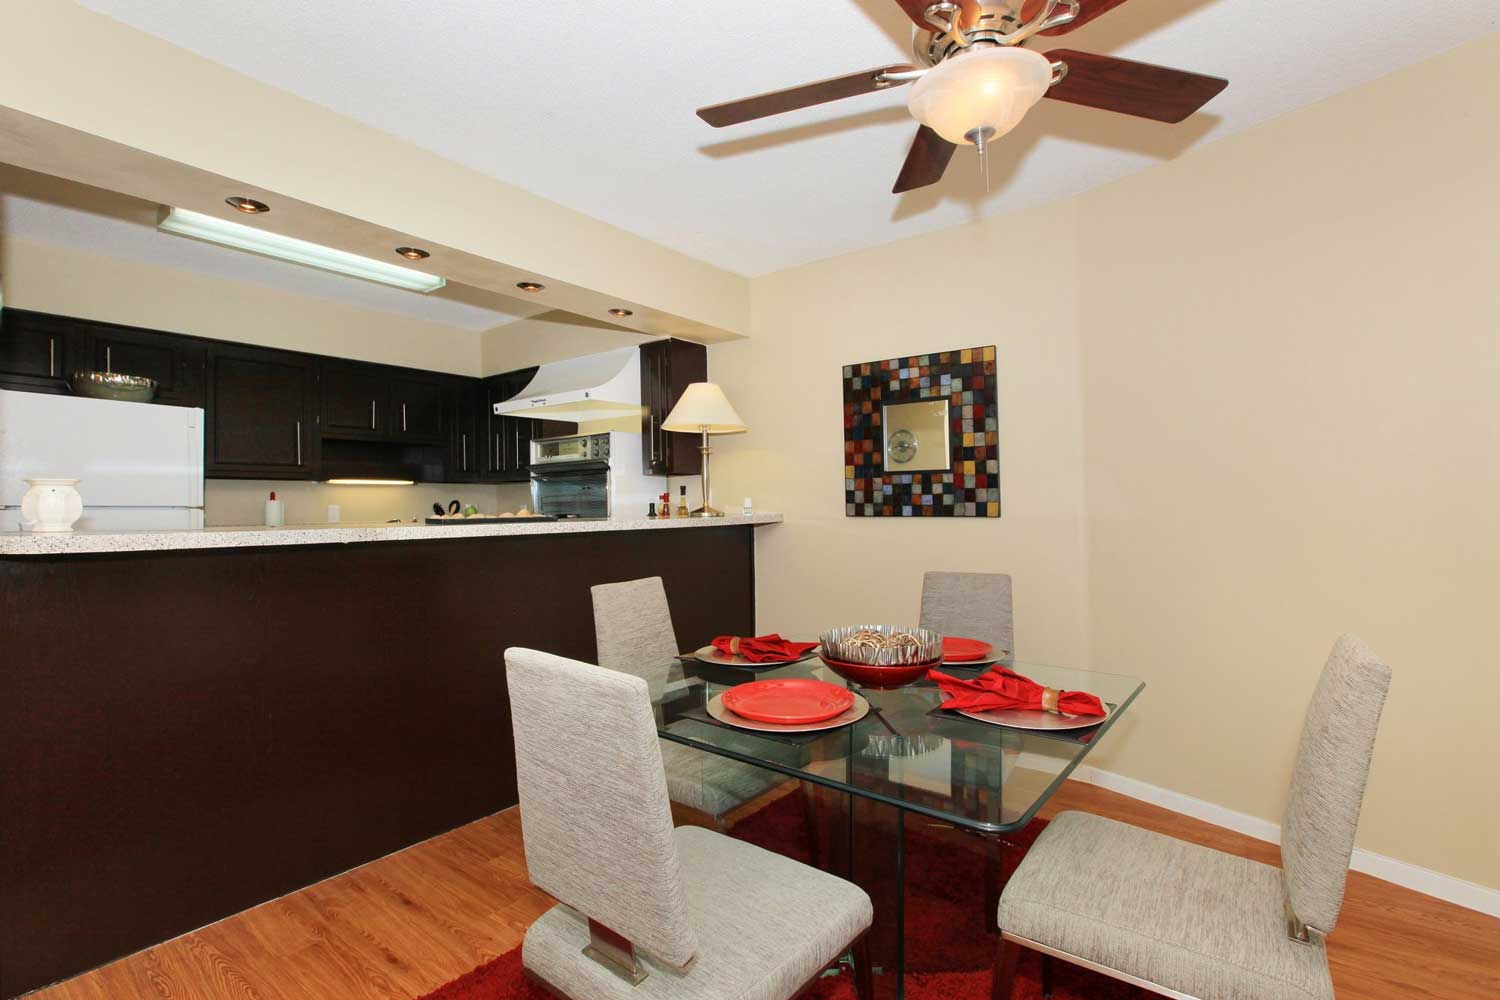 Separate Dining Areas with Retro Kitchen at View at Kessler Park Apartments in Dallas, TX